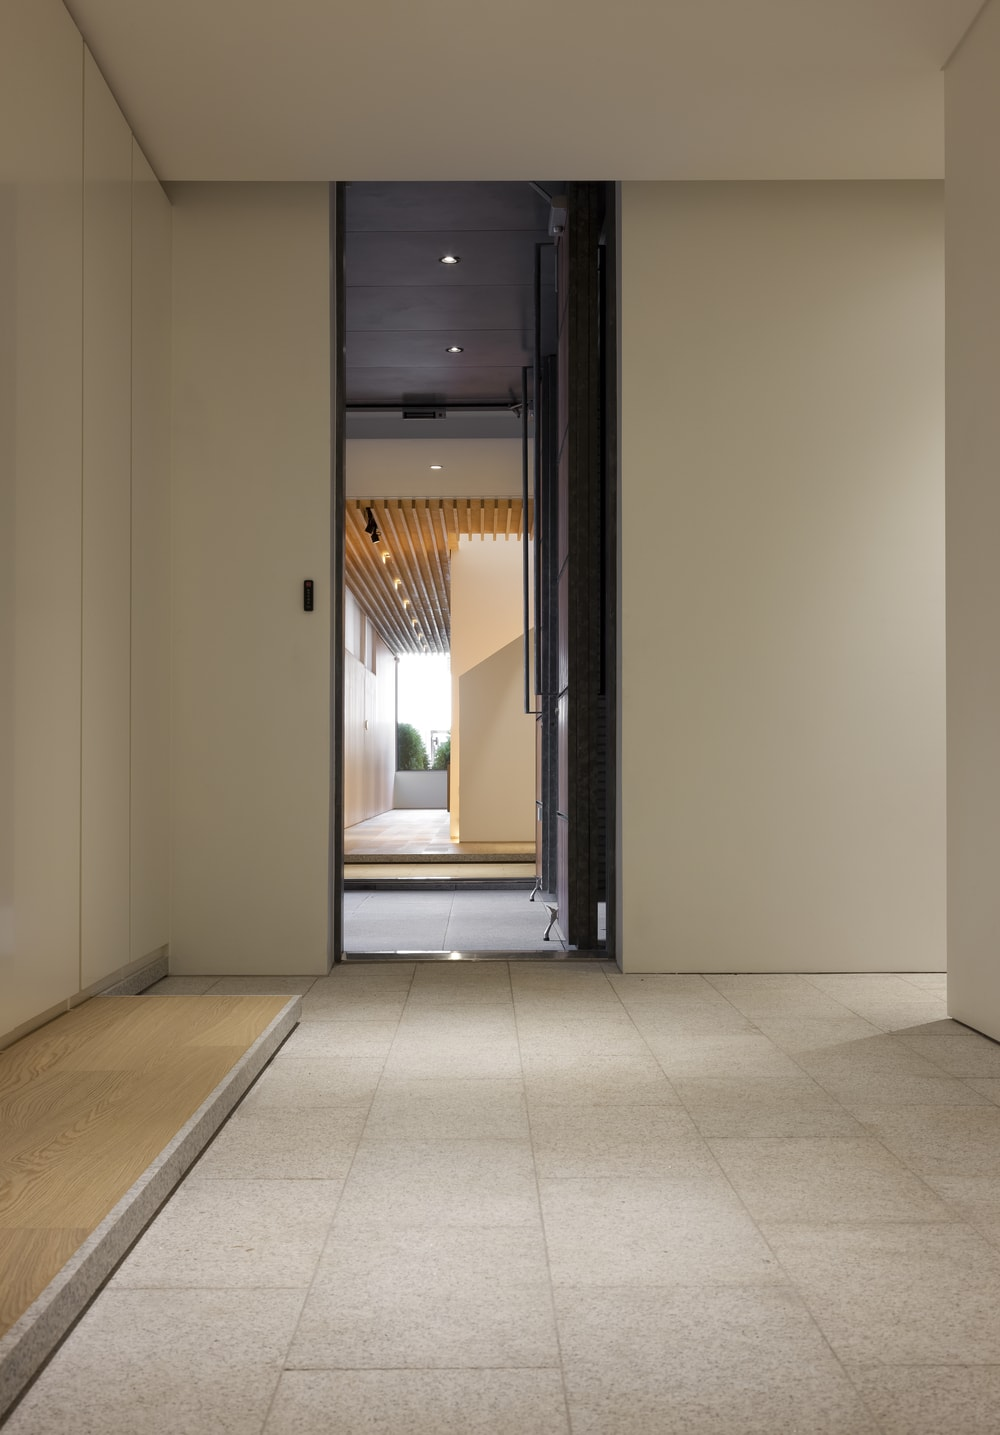 This is the door that leads to the back outdoor areas of the house as well as the parking area.